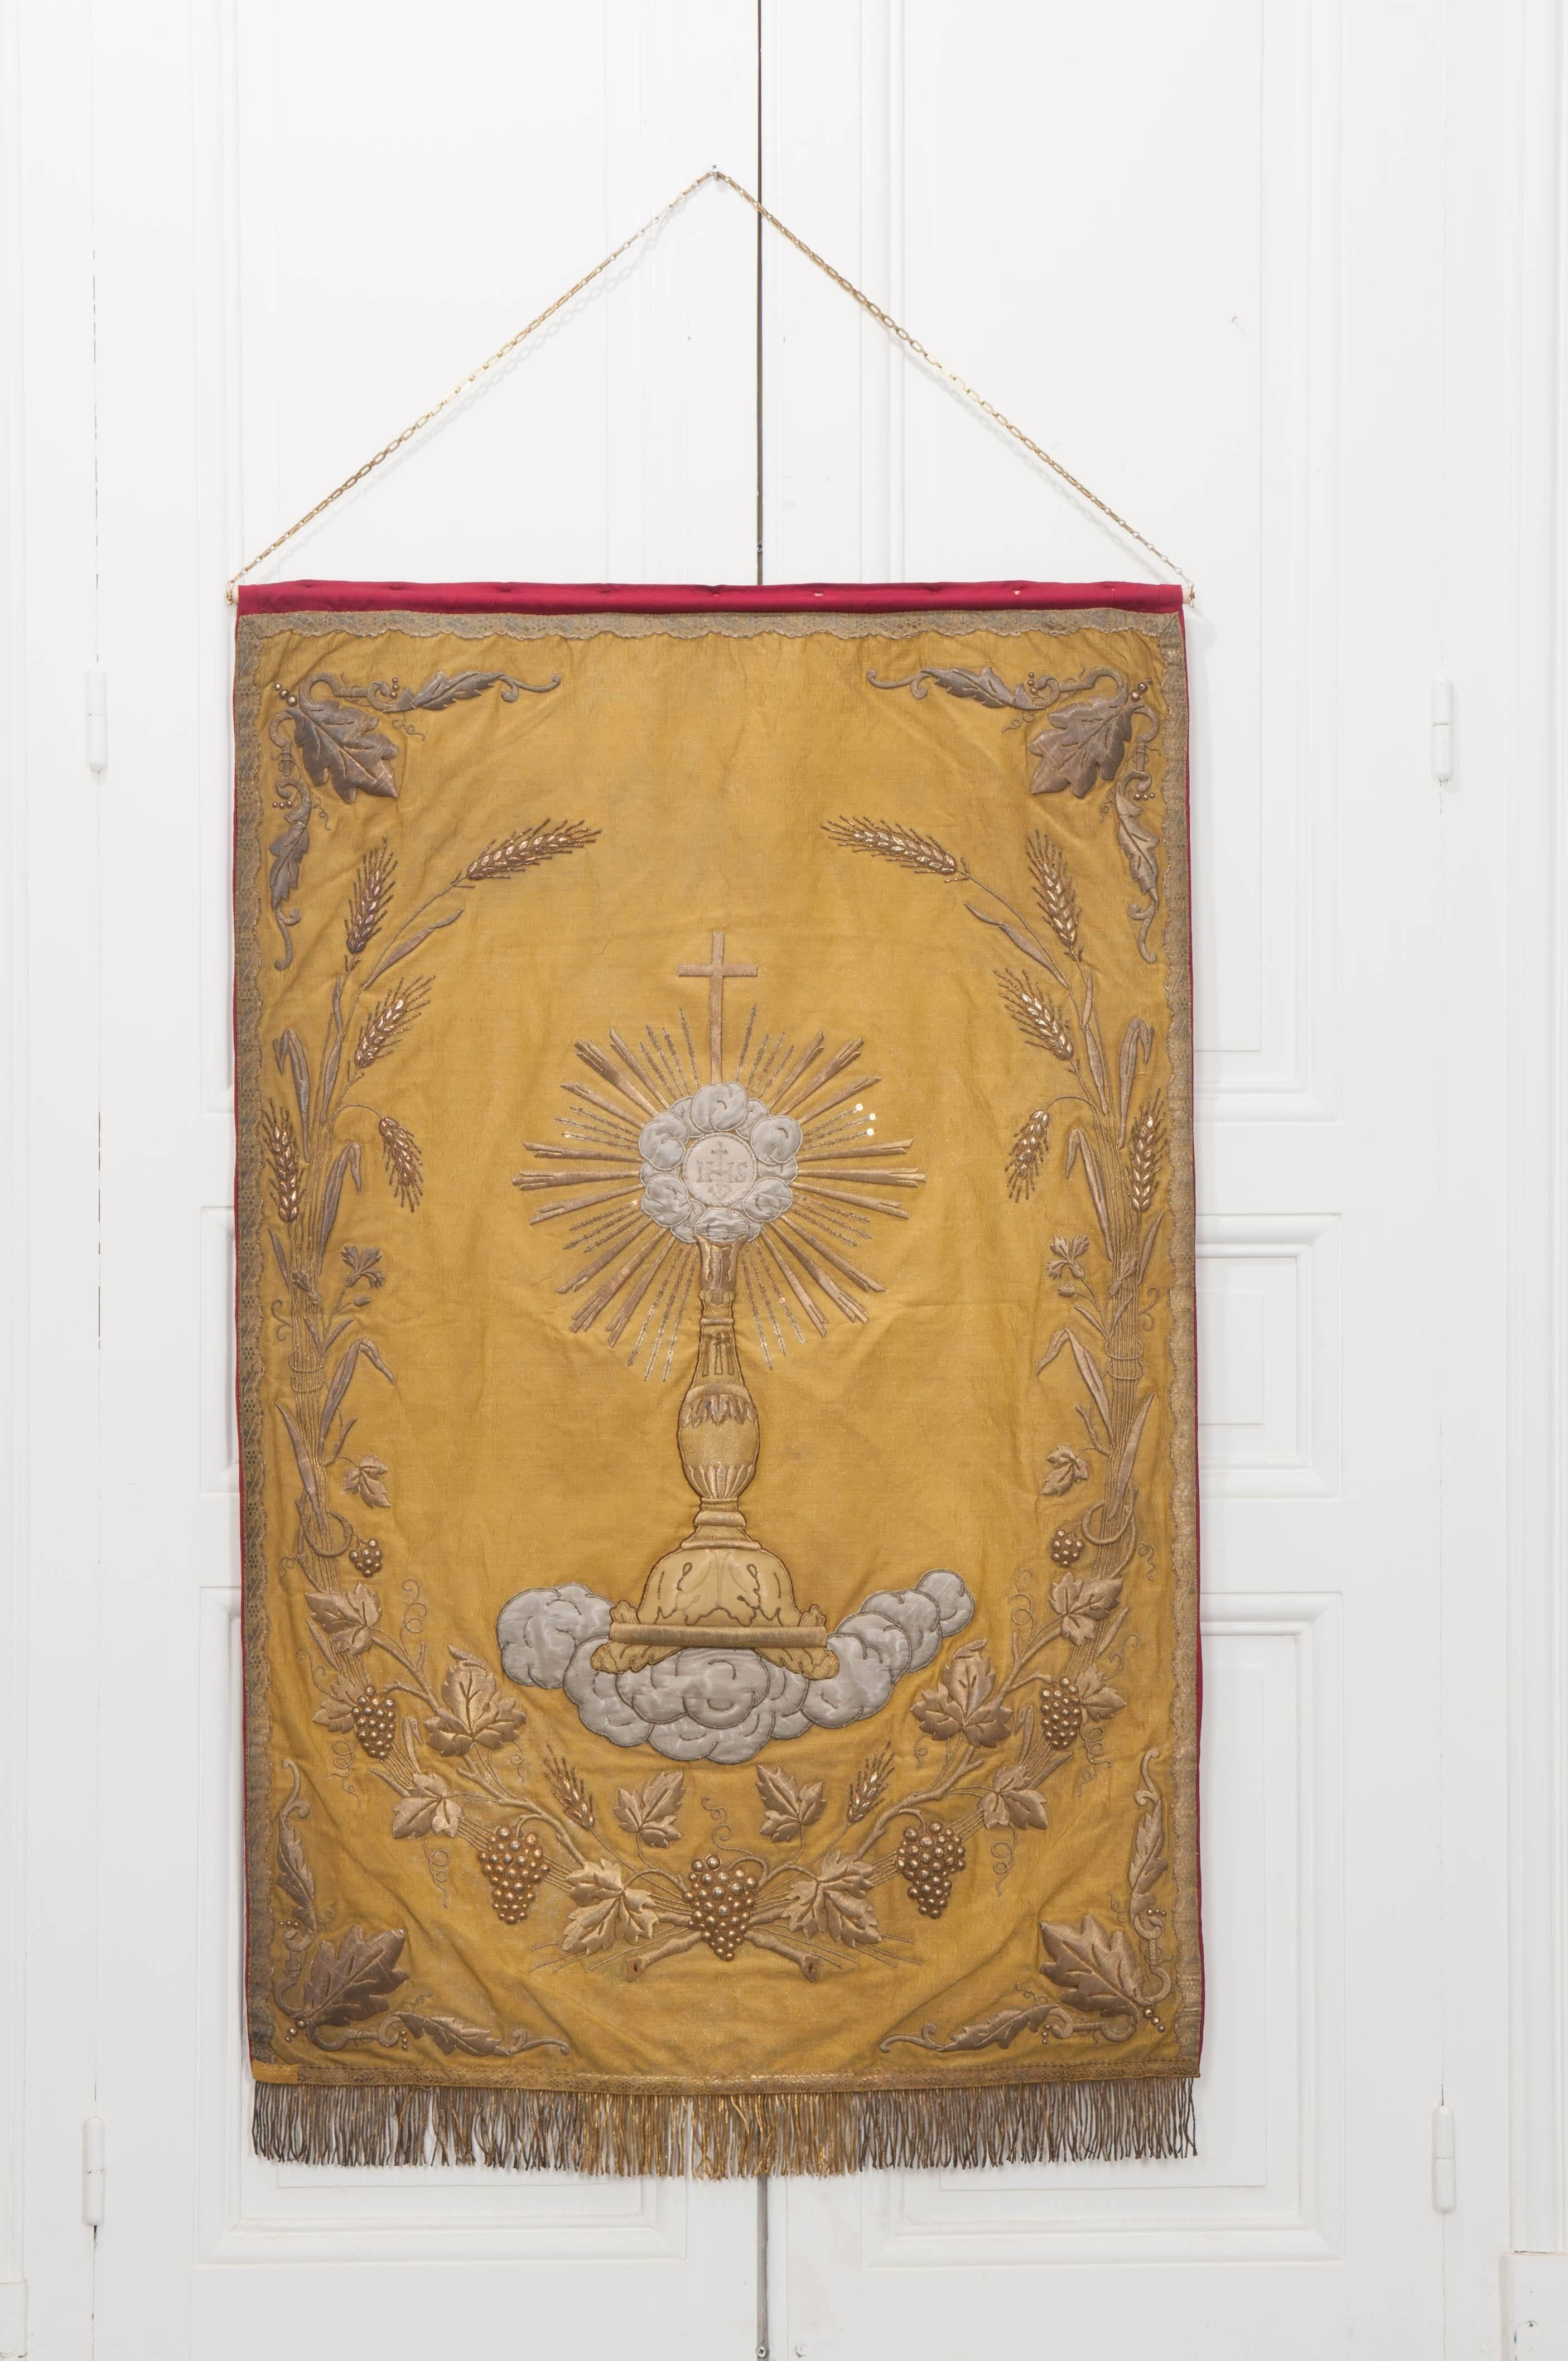 Linens & Textiles (pre-1930) Vintage Gold Metallic Trim With Red Embroidery 1½ Inches Wide Skilful Manufacture